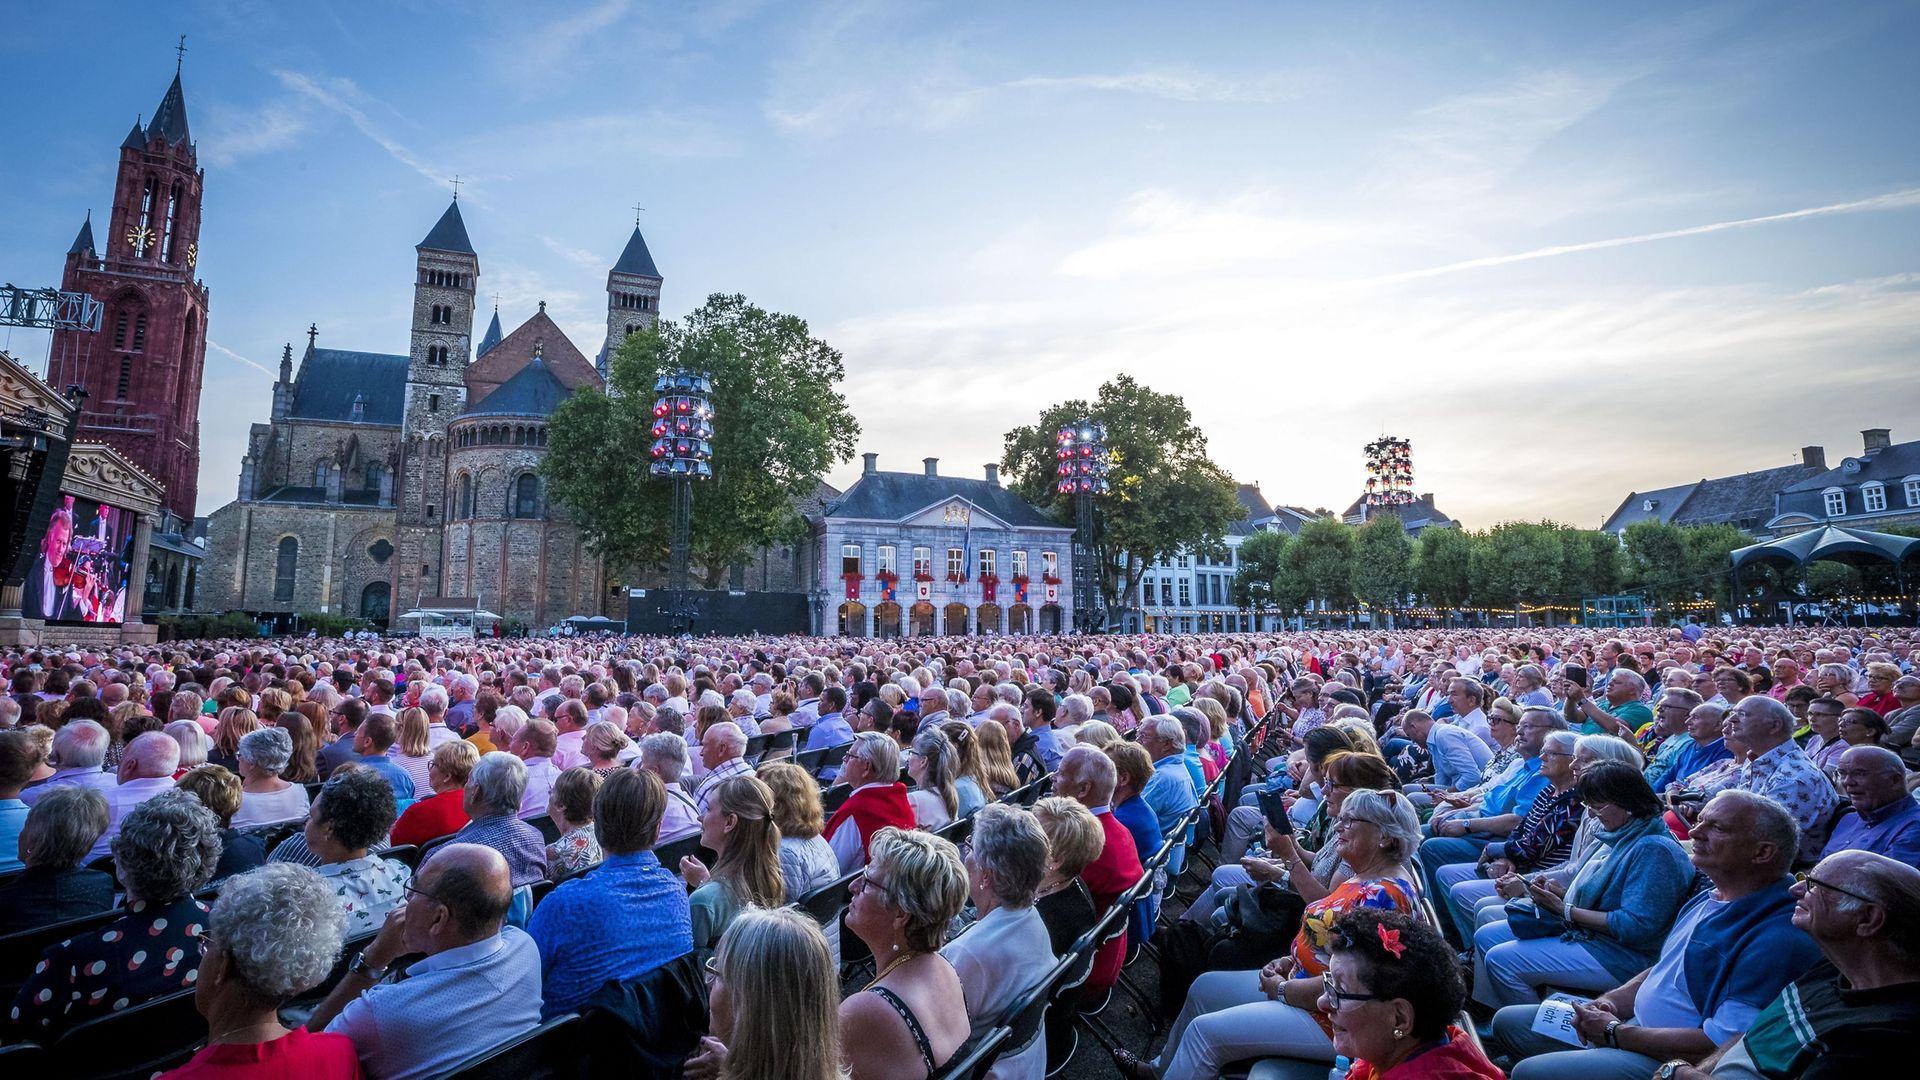 People attend a concert of Dutch violinist and concert director Andre Rieu as he performs for the 100th time on the Vrijthof square in Maastricht, on July 21, 2019. - Credit: AFP via Getty Images